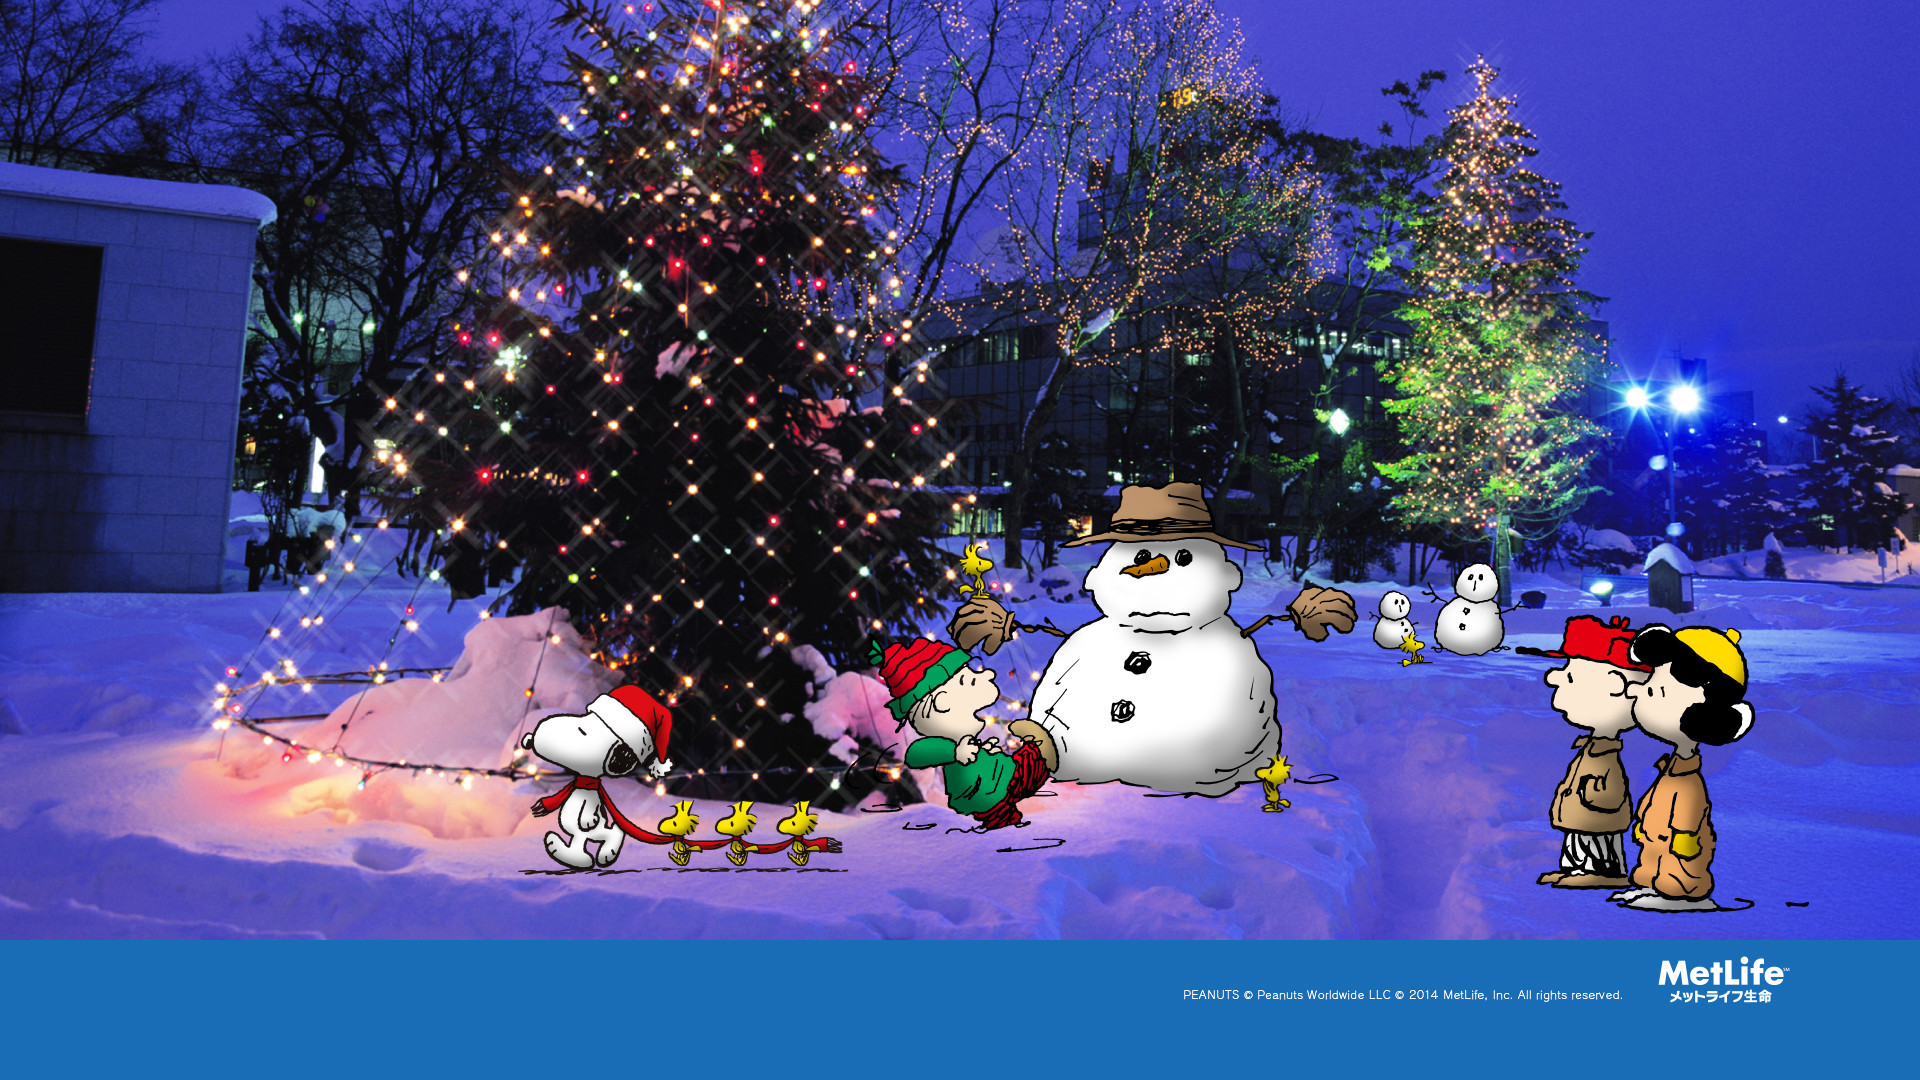 2560x1440 the peanuts charlie brown snoopy wallpapers hd wallpapers - Snoopy Christmas Wallpaper